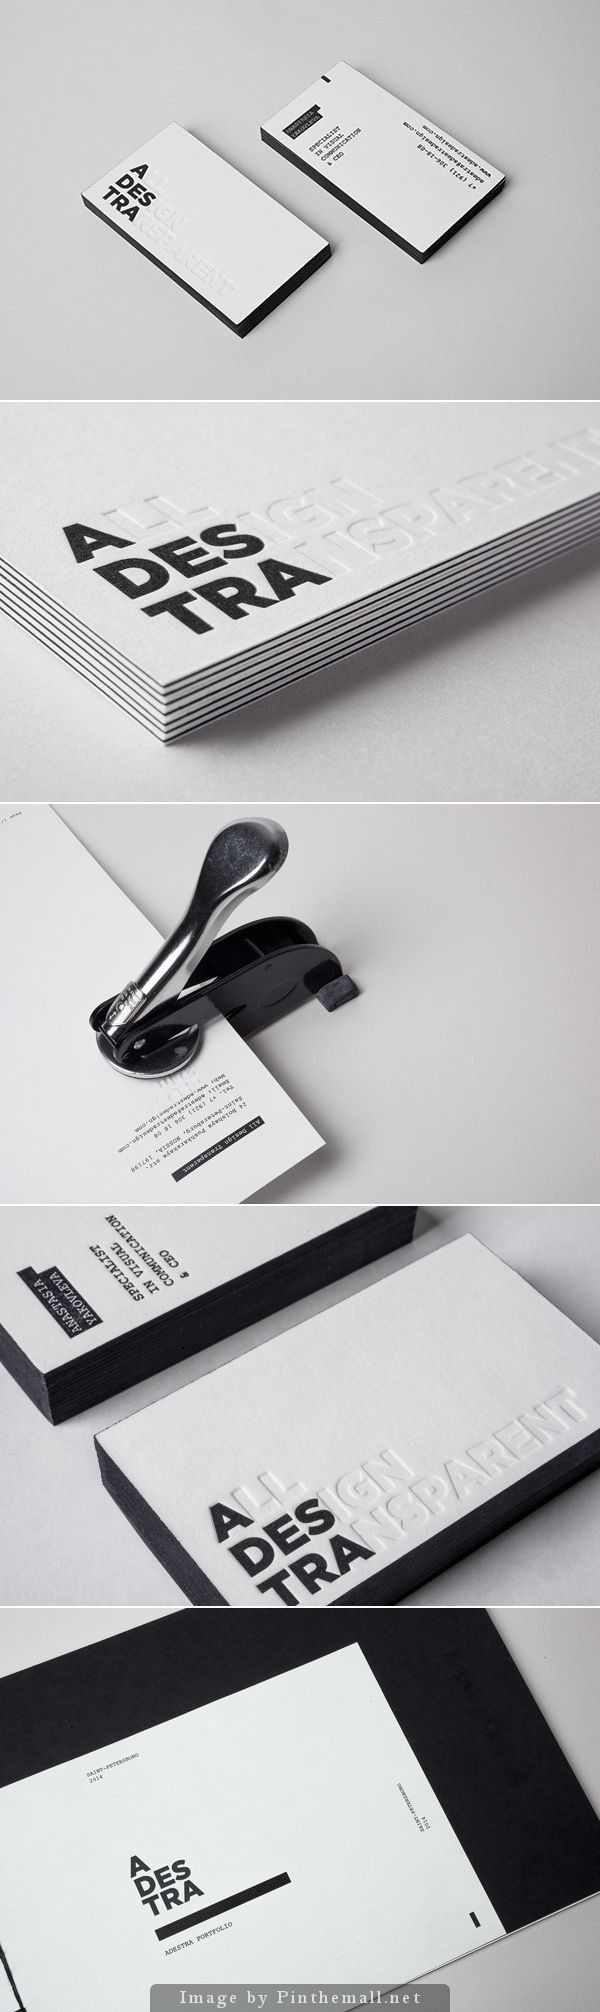 best card design images on pinterest logo designing logos and